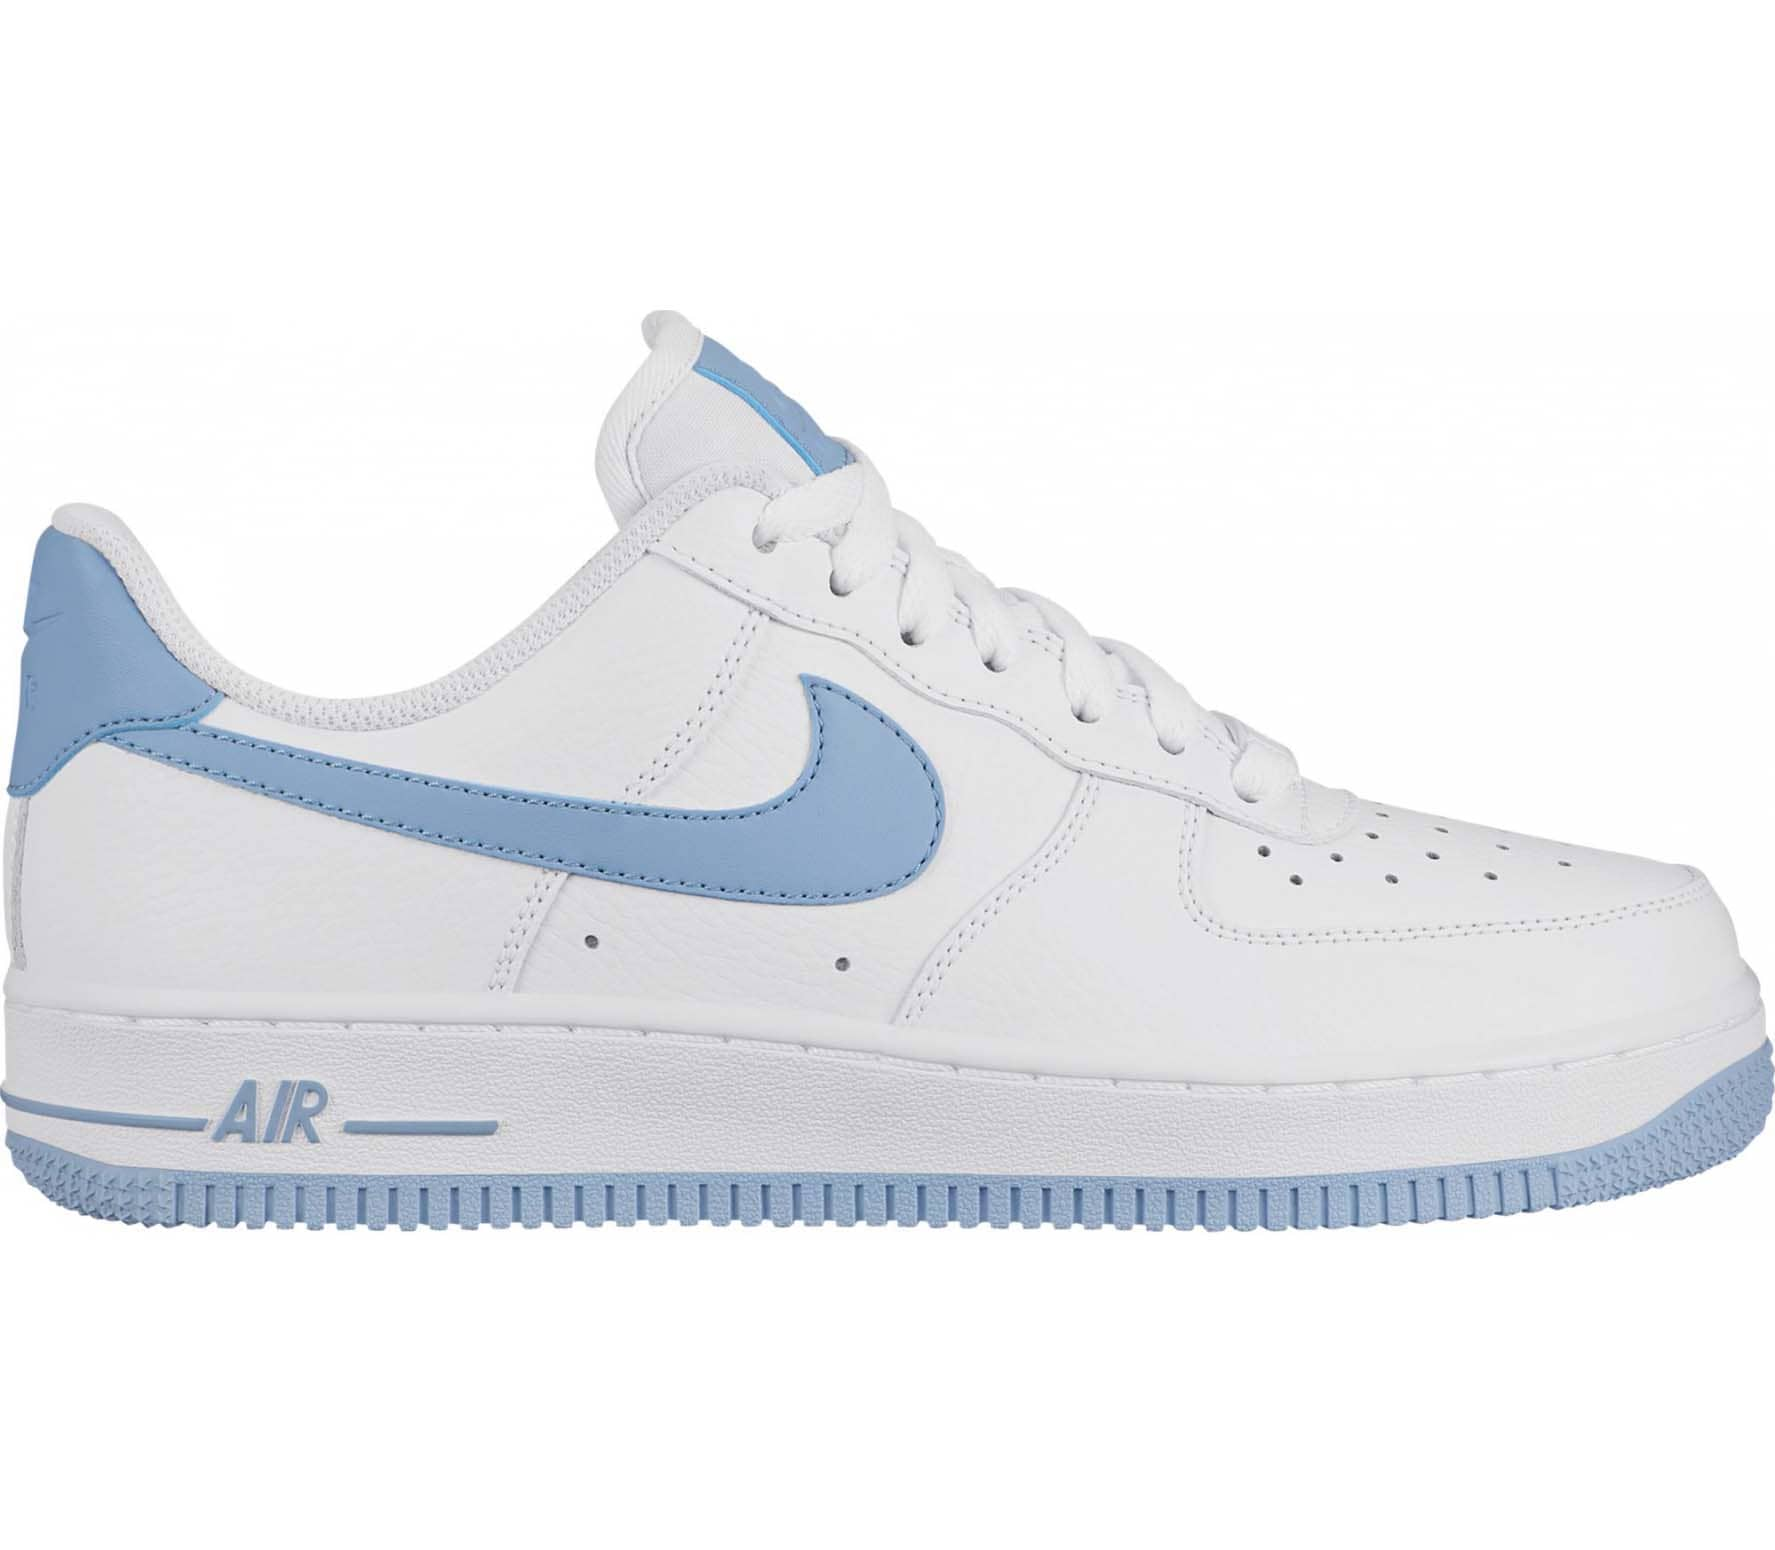 Nike Sportswear Air Force 1 '07 Damen Sneaker weiß